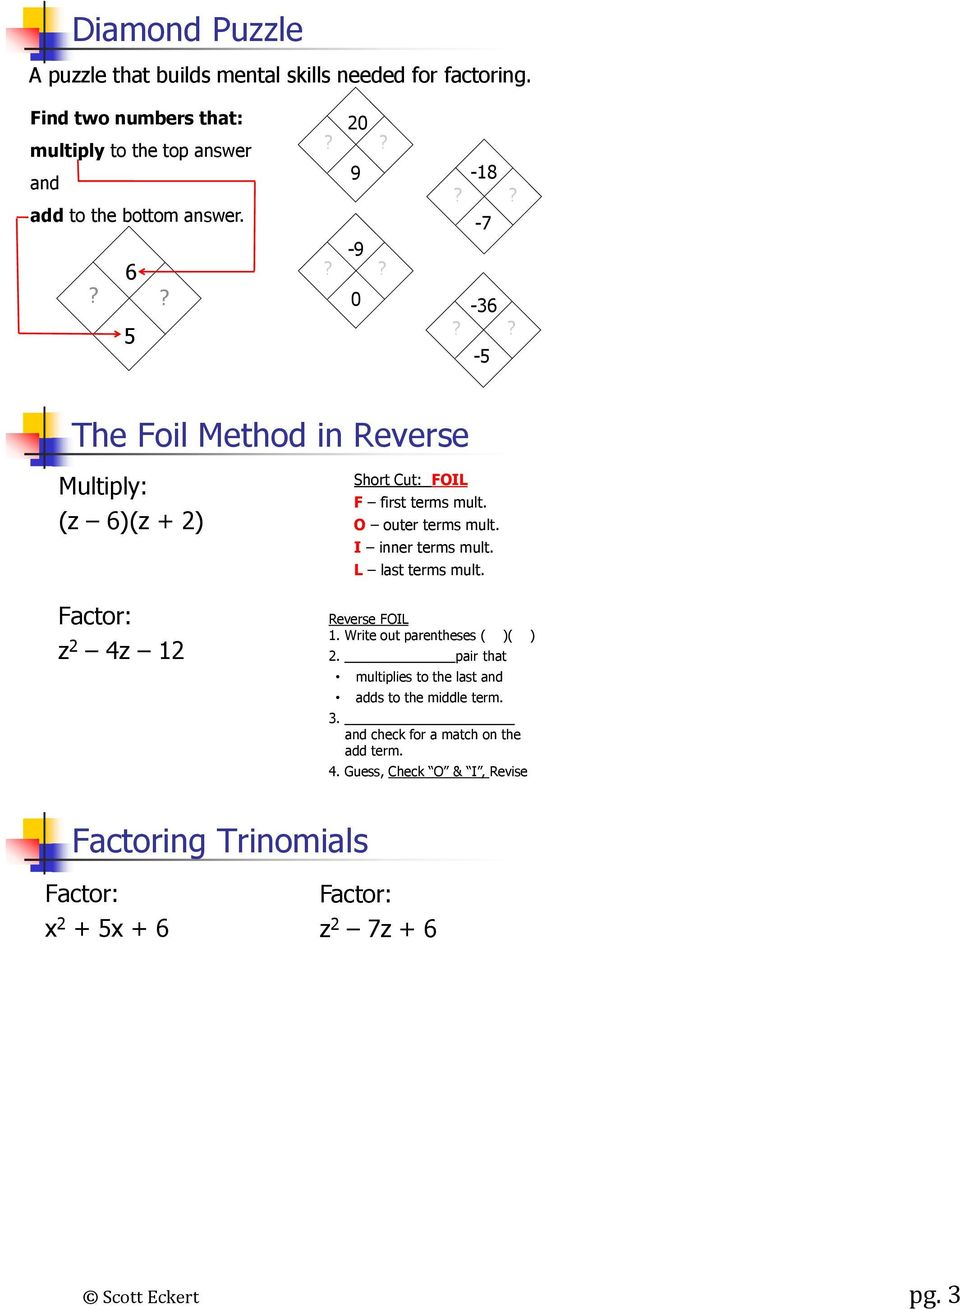 MATH 90 CHAPTER 6 Name:  - PDF